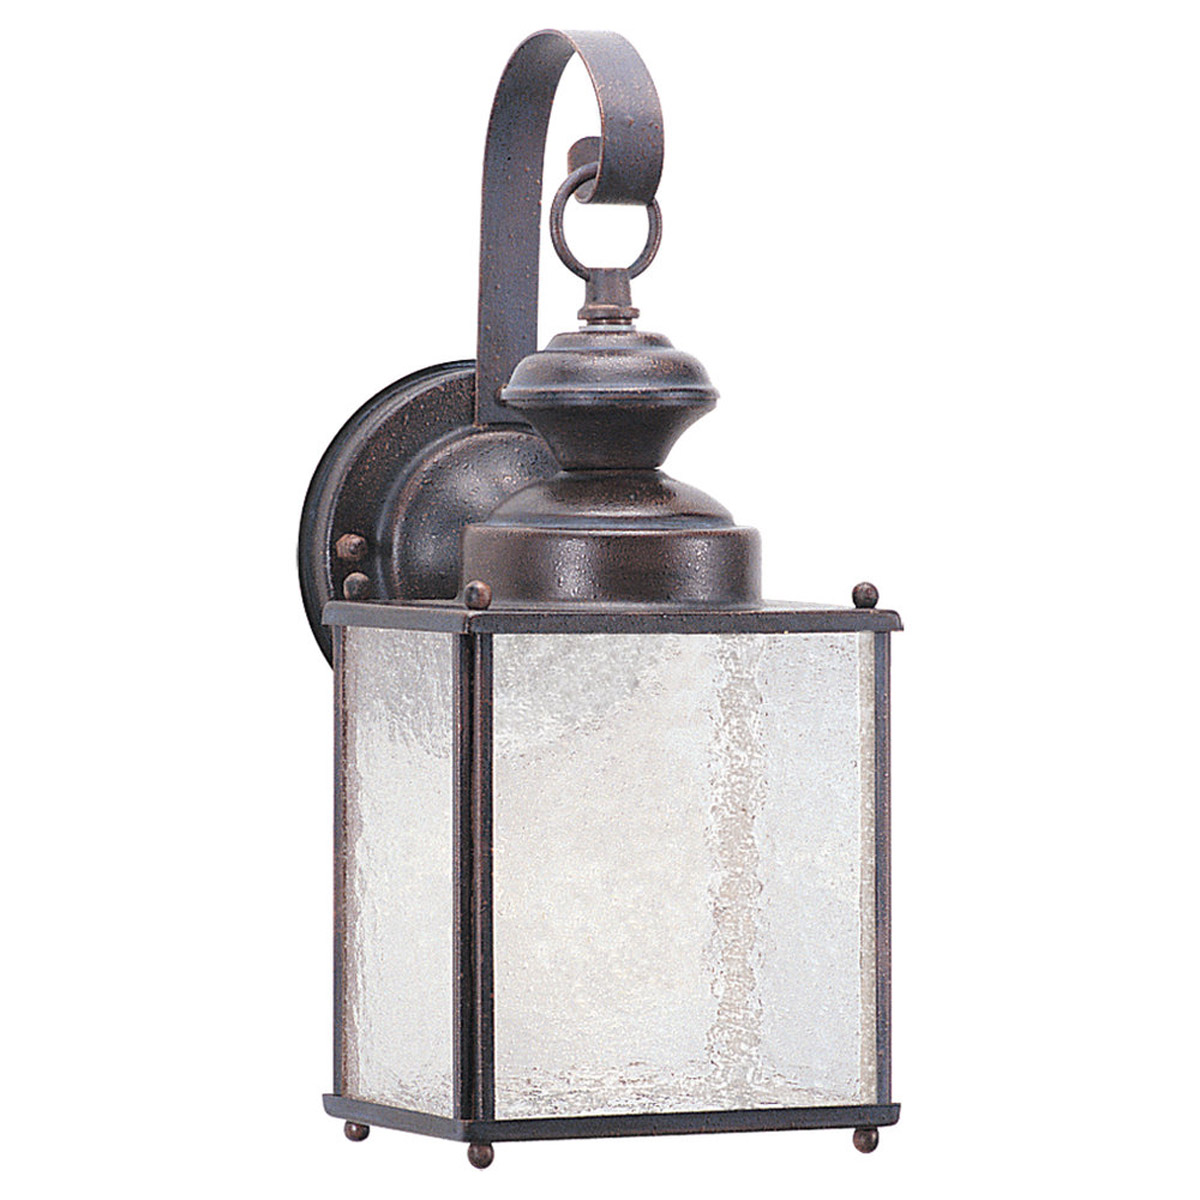 Sea Gull Lighting Jamestowne 1 Light Outdoor Wall Lantern in Textured Rust Patina 8981PBLE-08